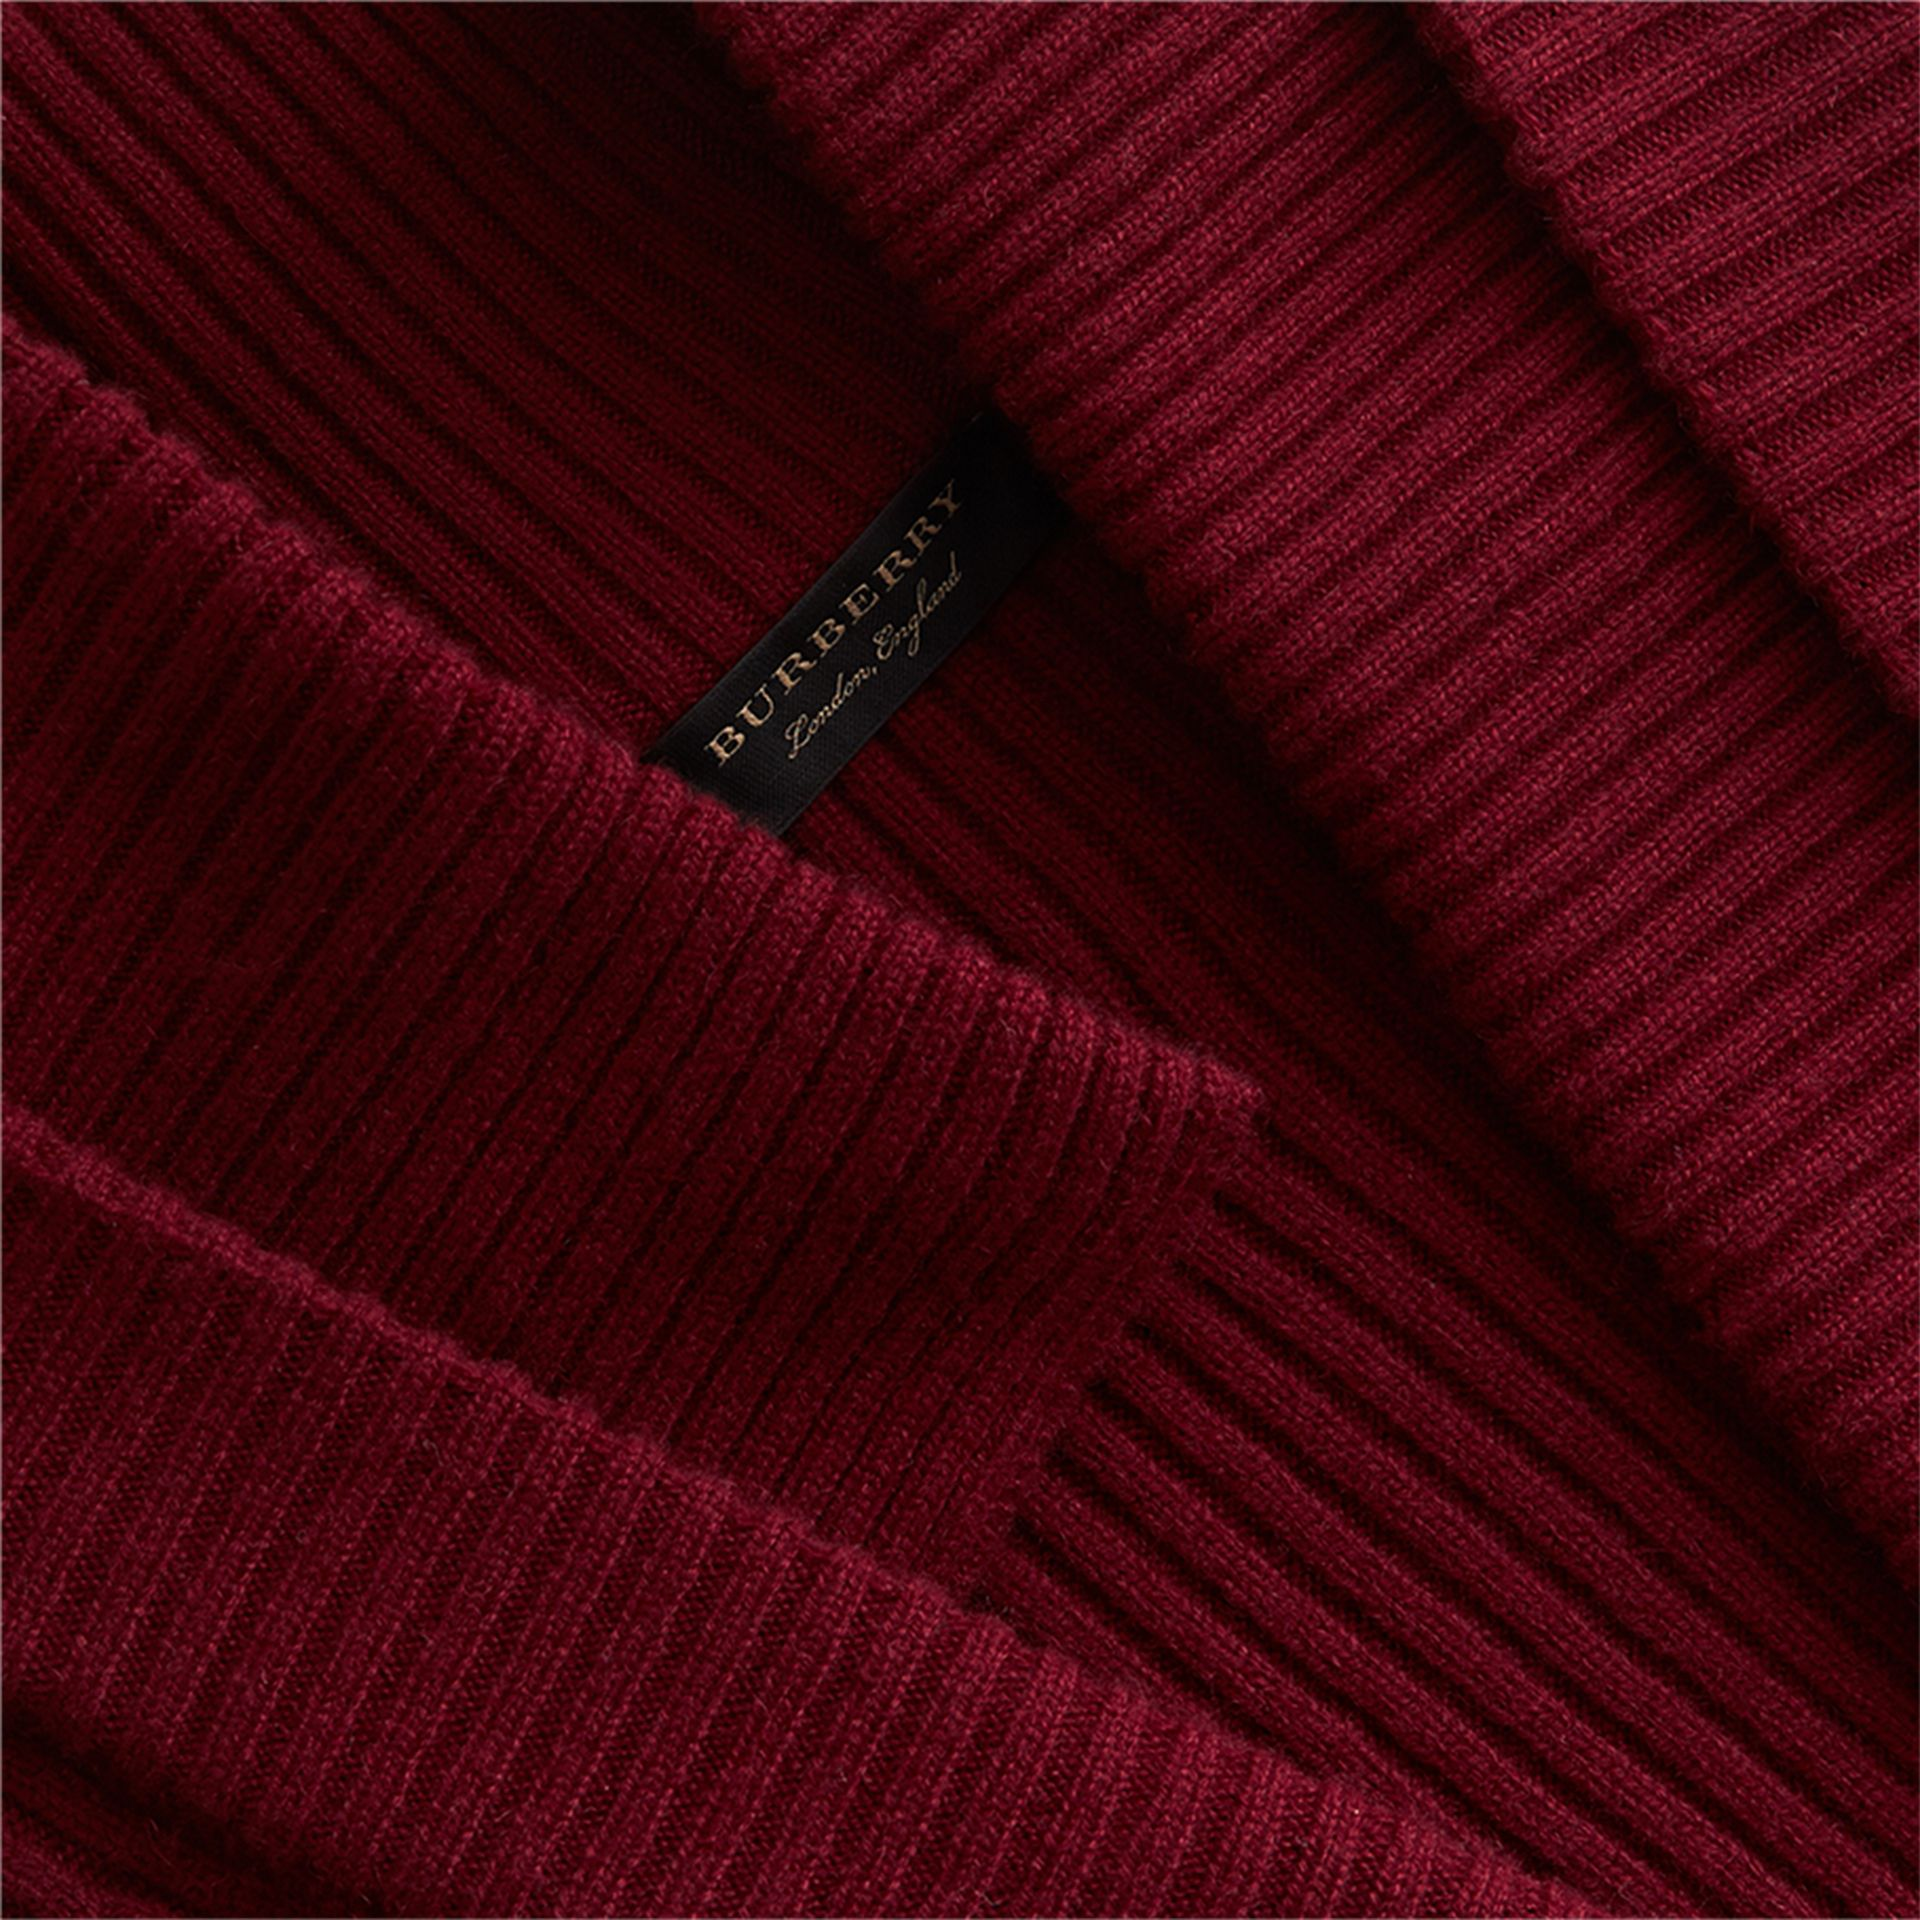 Knitted Wool Cashmere Military-inspired Jacket in Bordeaux - Women | Burberry Singapore - gallery image 2